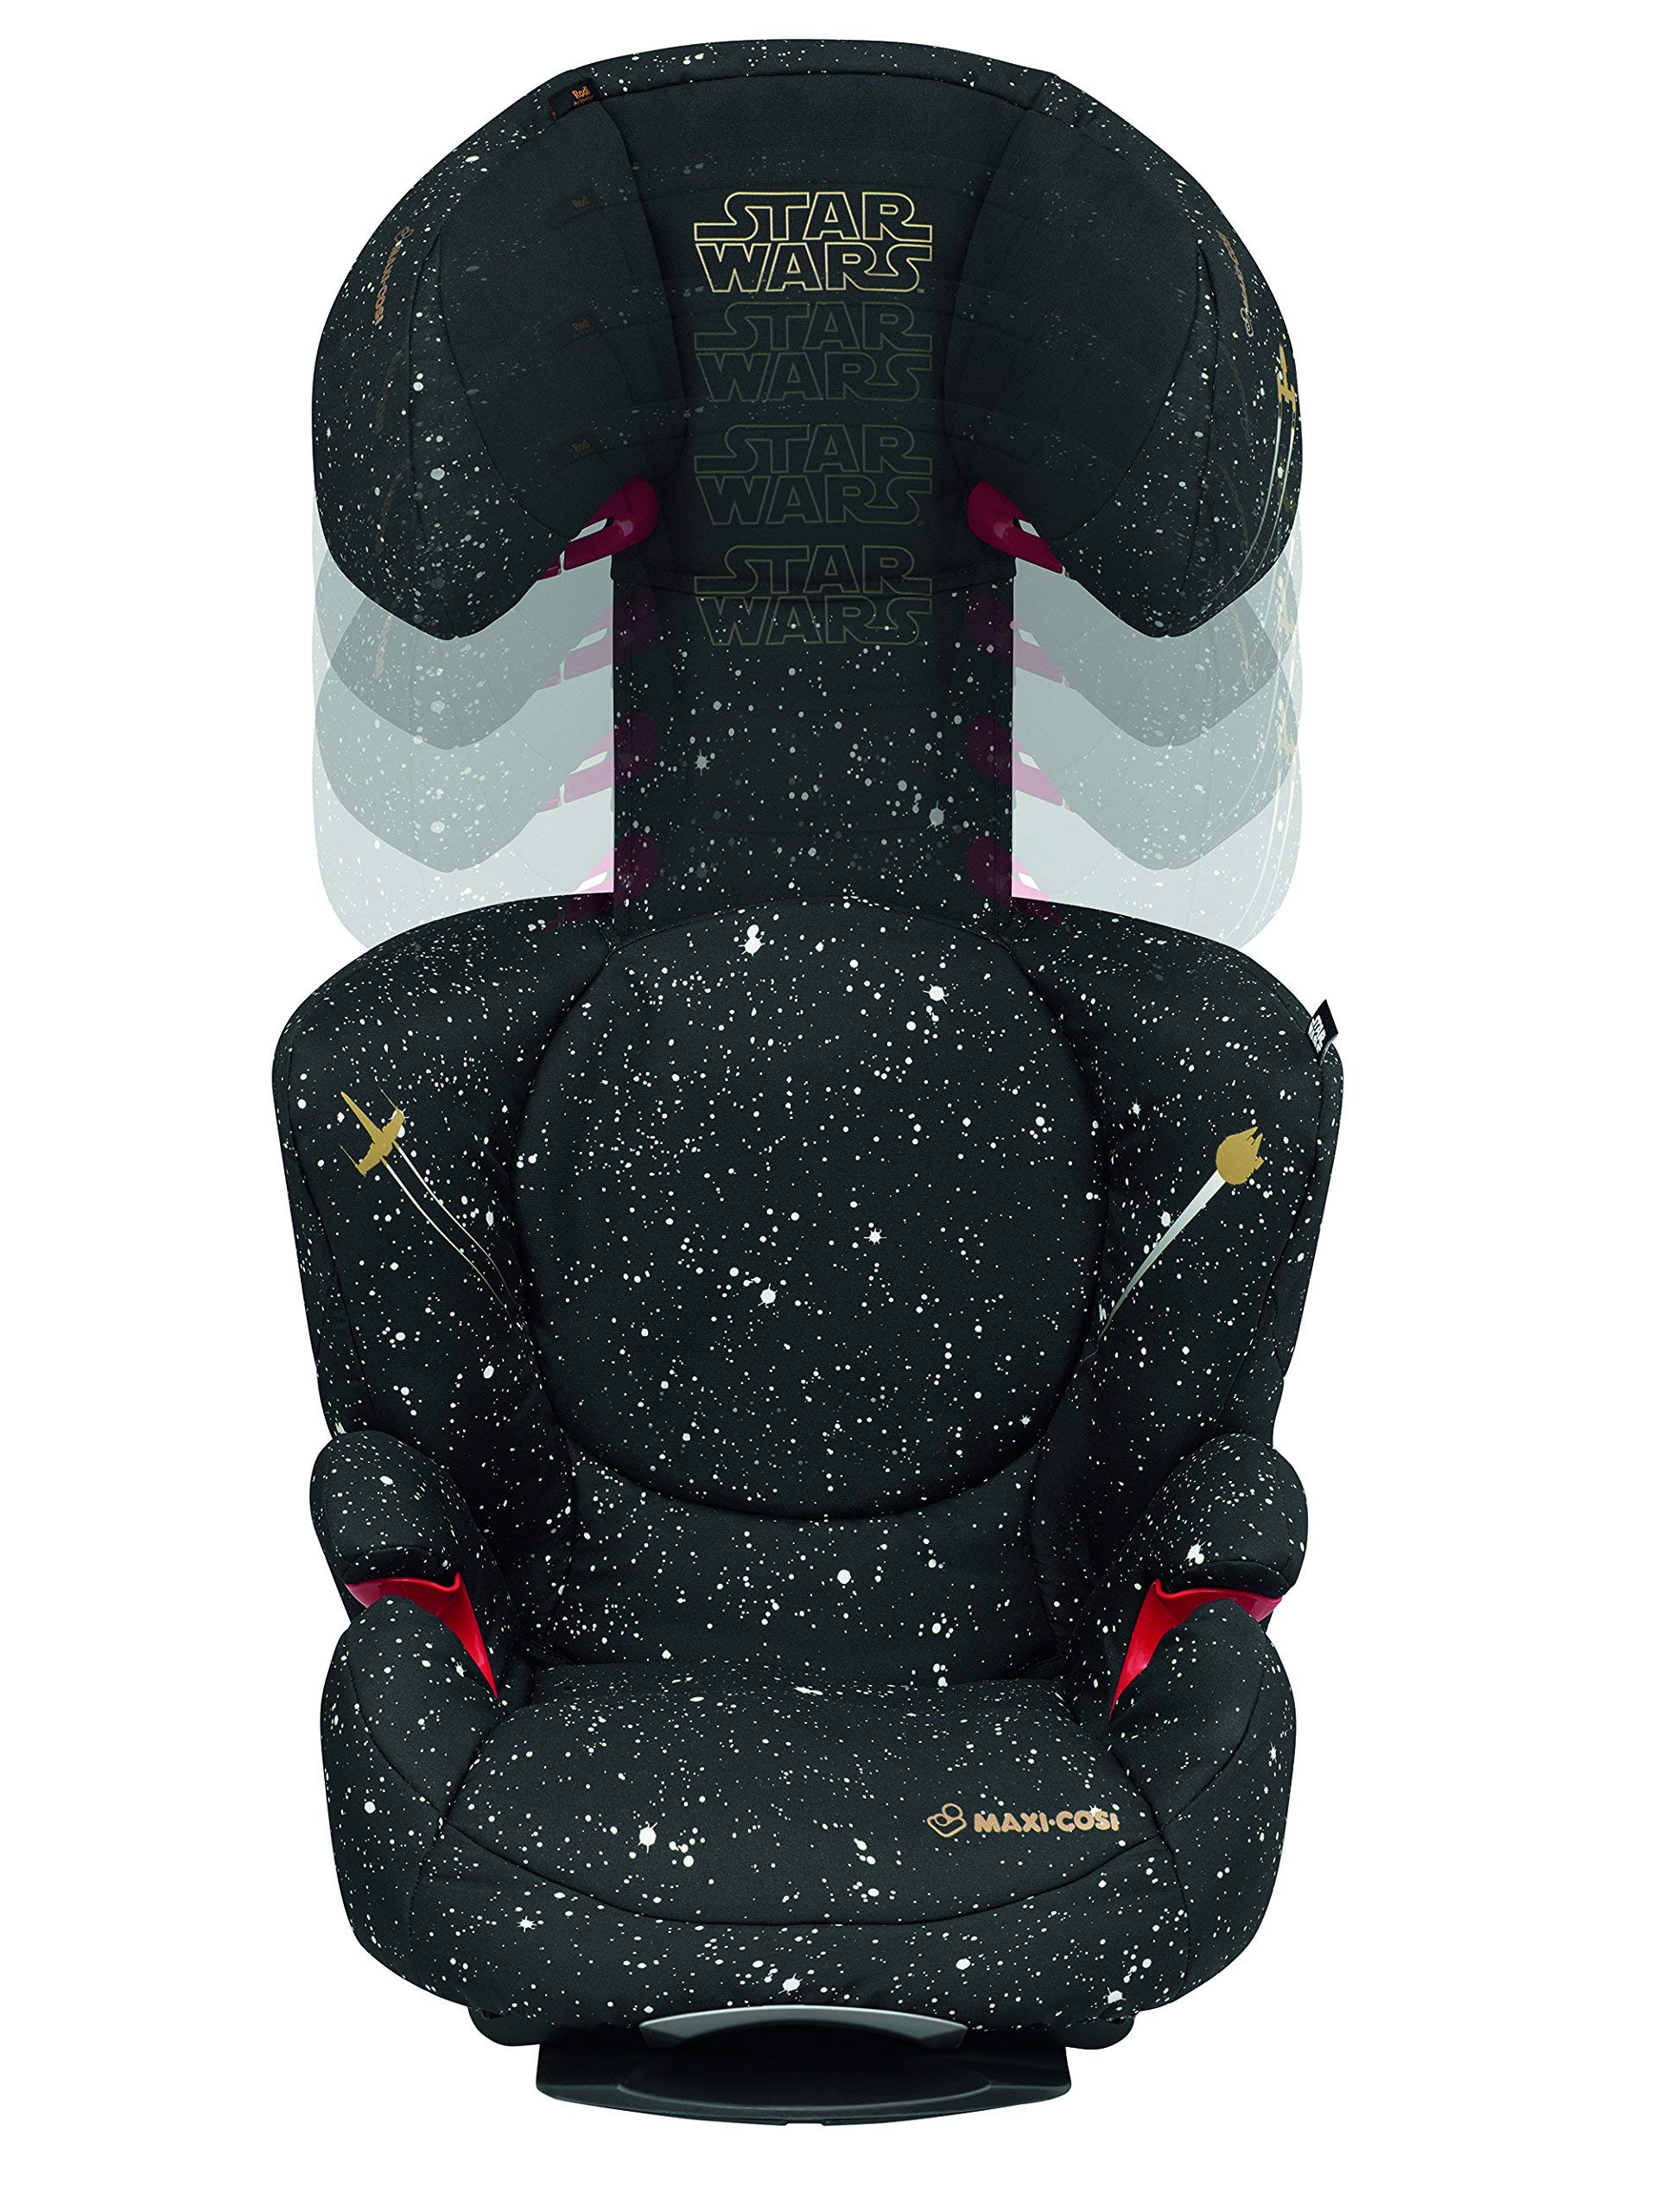 Maxi-Cosi Rodi AirProtect Child Car Seat, Lightweight Highback Booster, 3.5-12 Years, 15-36 kg, Star Wars Maxi-Cosi Child car seat, suitable from 3.5 to 12 years (15-36 kg) Easily install this safe car seat with a three point seat belt and attach the anchorage point in the head rest through your cars head rest Patented AirProtect technology in headrest reduces the risk of head and neck injuries up to 20 percent 11